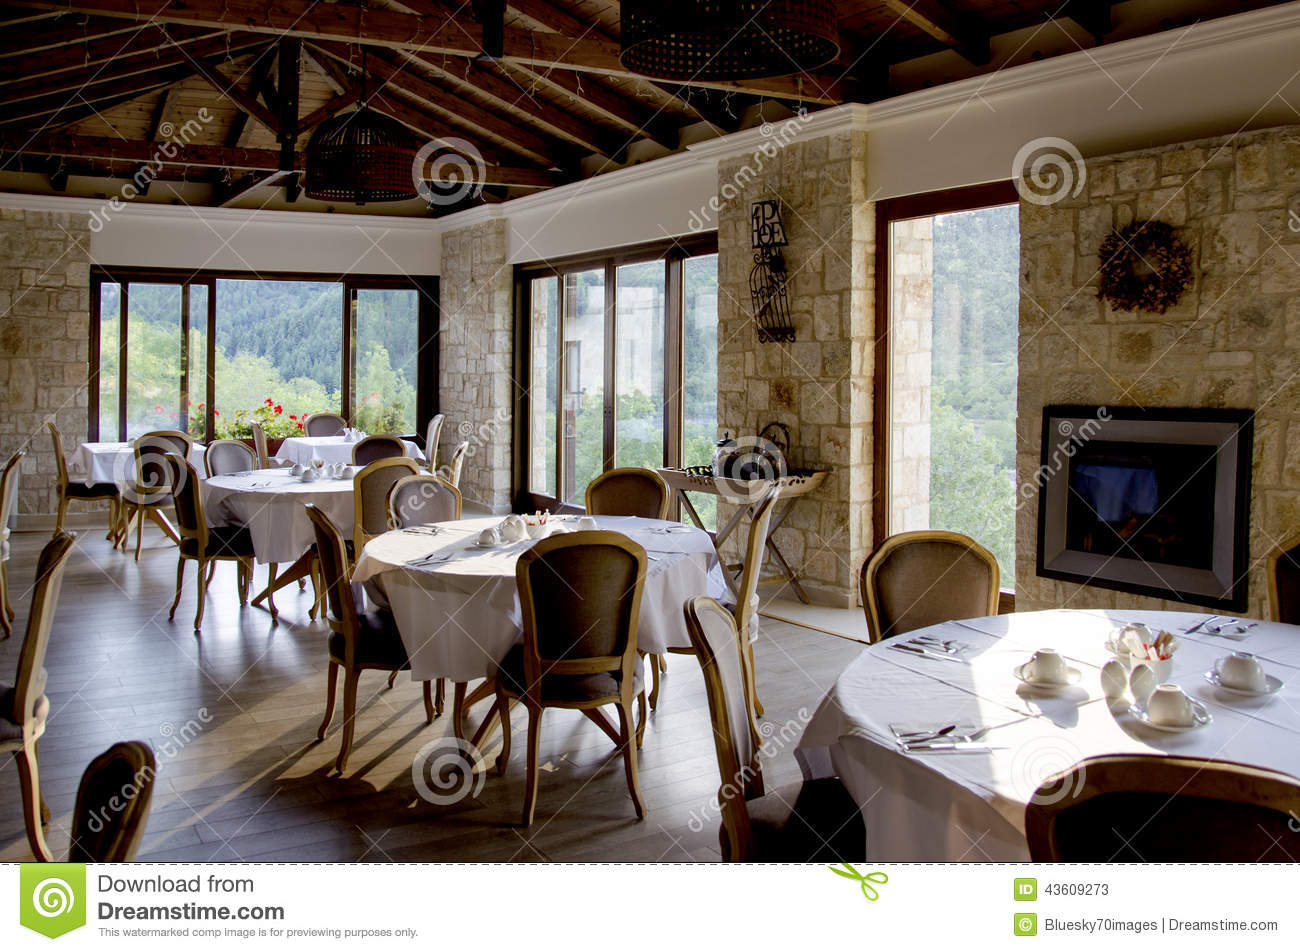 int rieur de restaurant avec les meubles en bois et les murs en pierre photo stock image 43609273. Black Bedroom Furniture Sets. Home Design Ideas